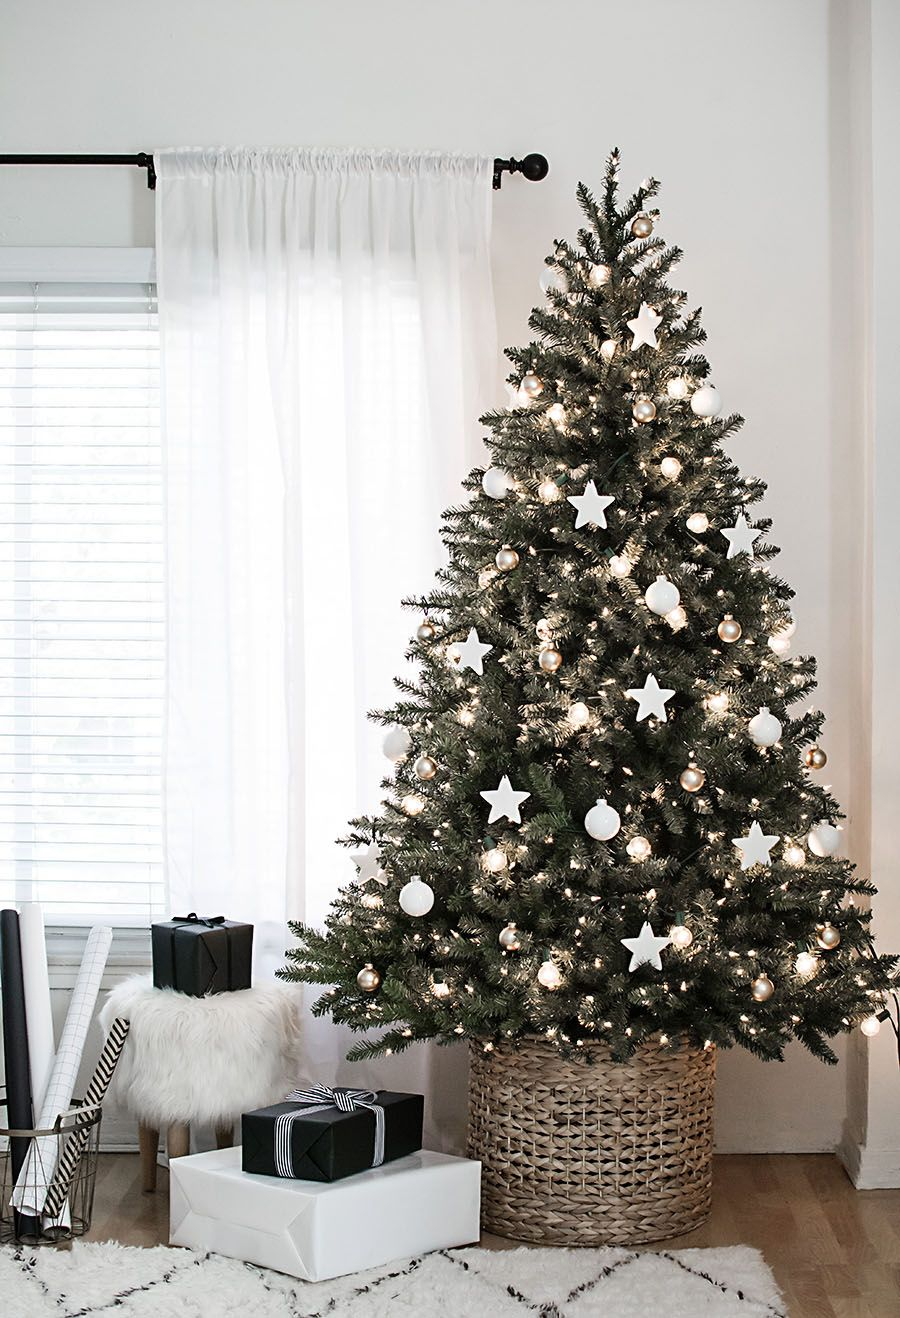 10 Christmas Tree Decorating Ideas | Pinterest | Christmas tree ...